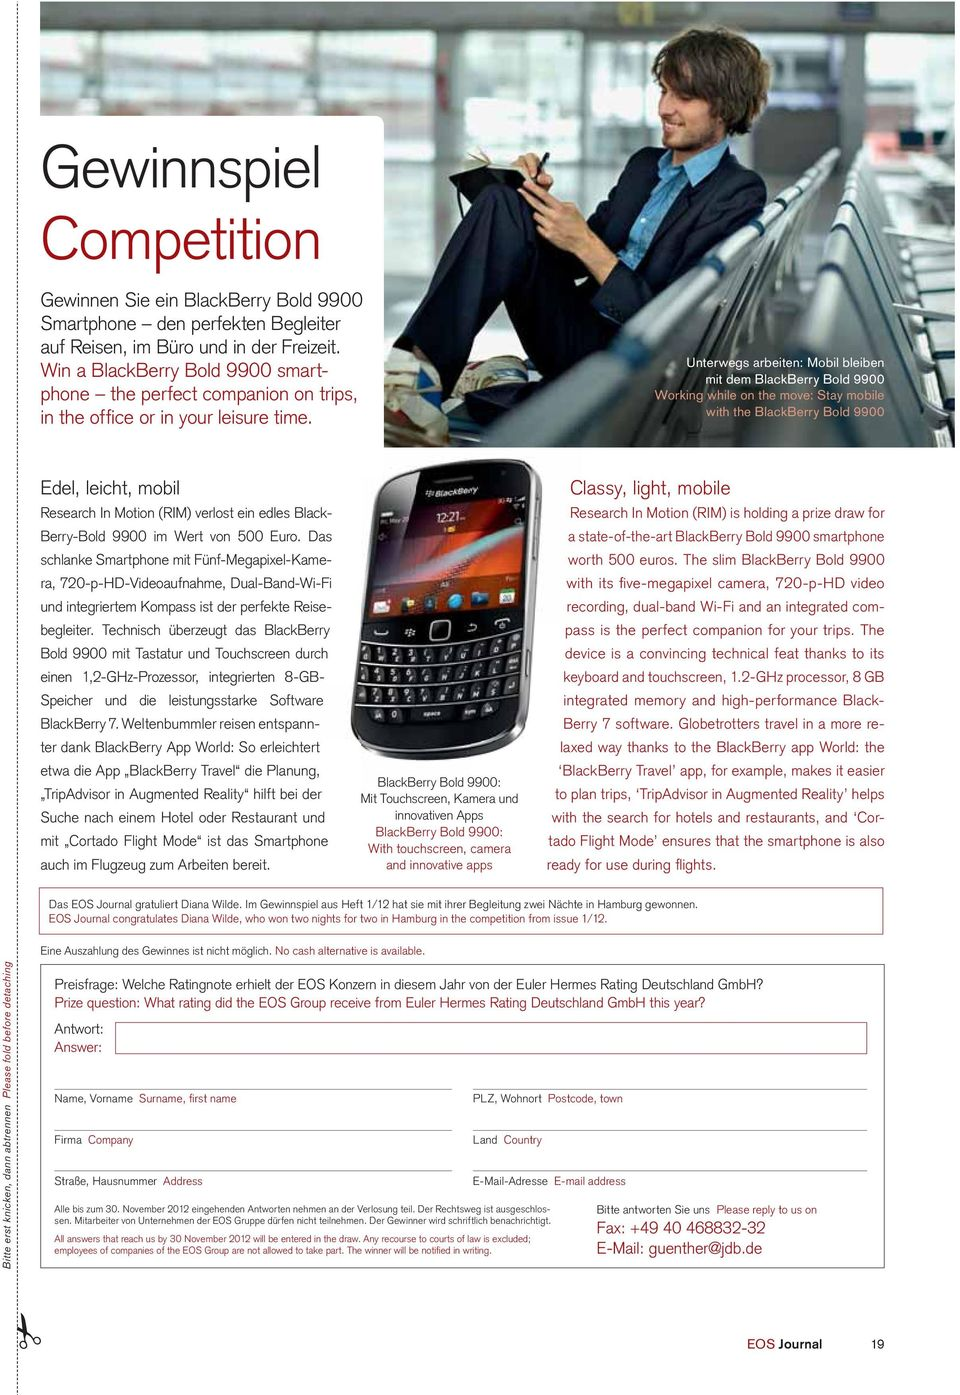 Unterwegs arbeiten: Mobil bleiben mit dem BlackBerry Bold 9900 Working while on the move: Stay mobile with the BlackBerry Bold 9900 Edel, leicht, mobil Research In Motion (RIM) verlost ein edles